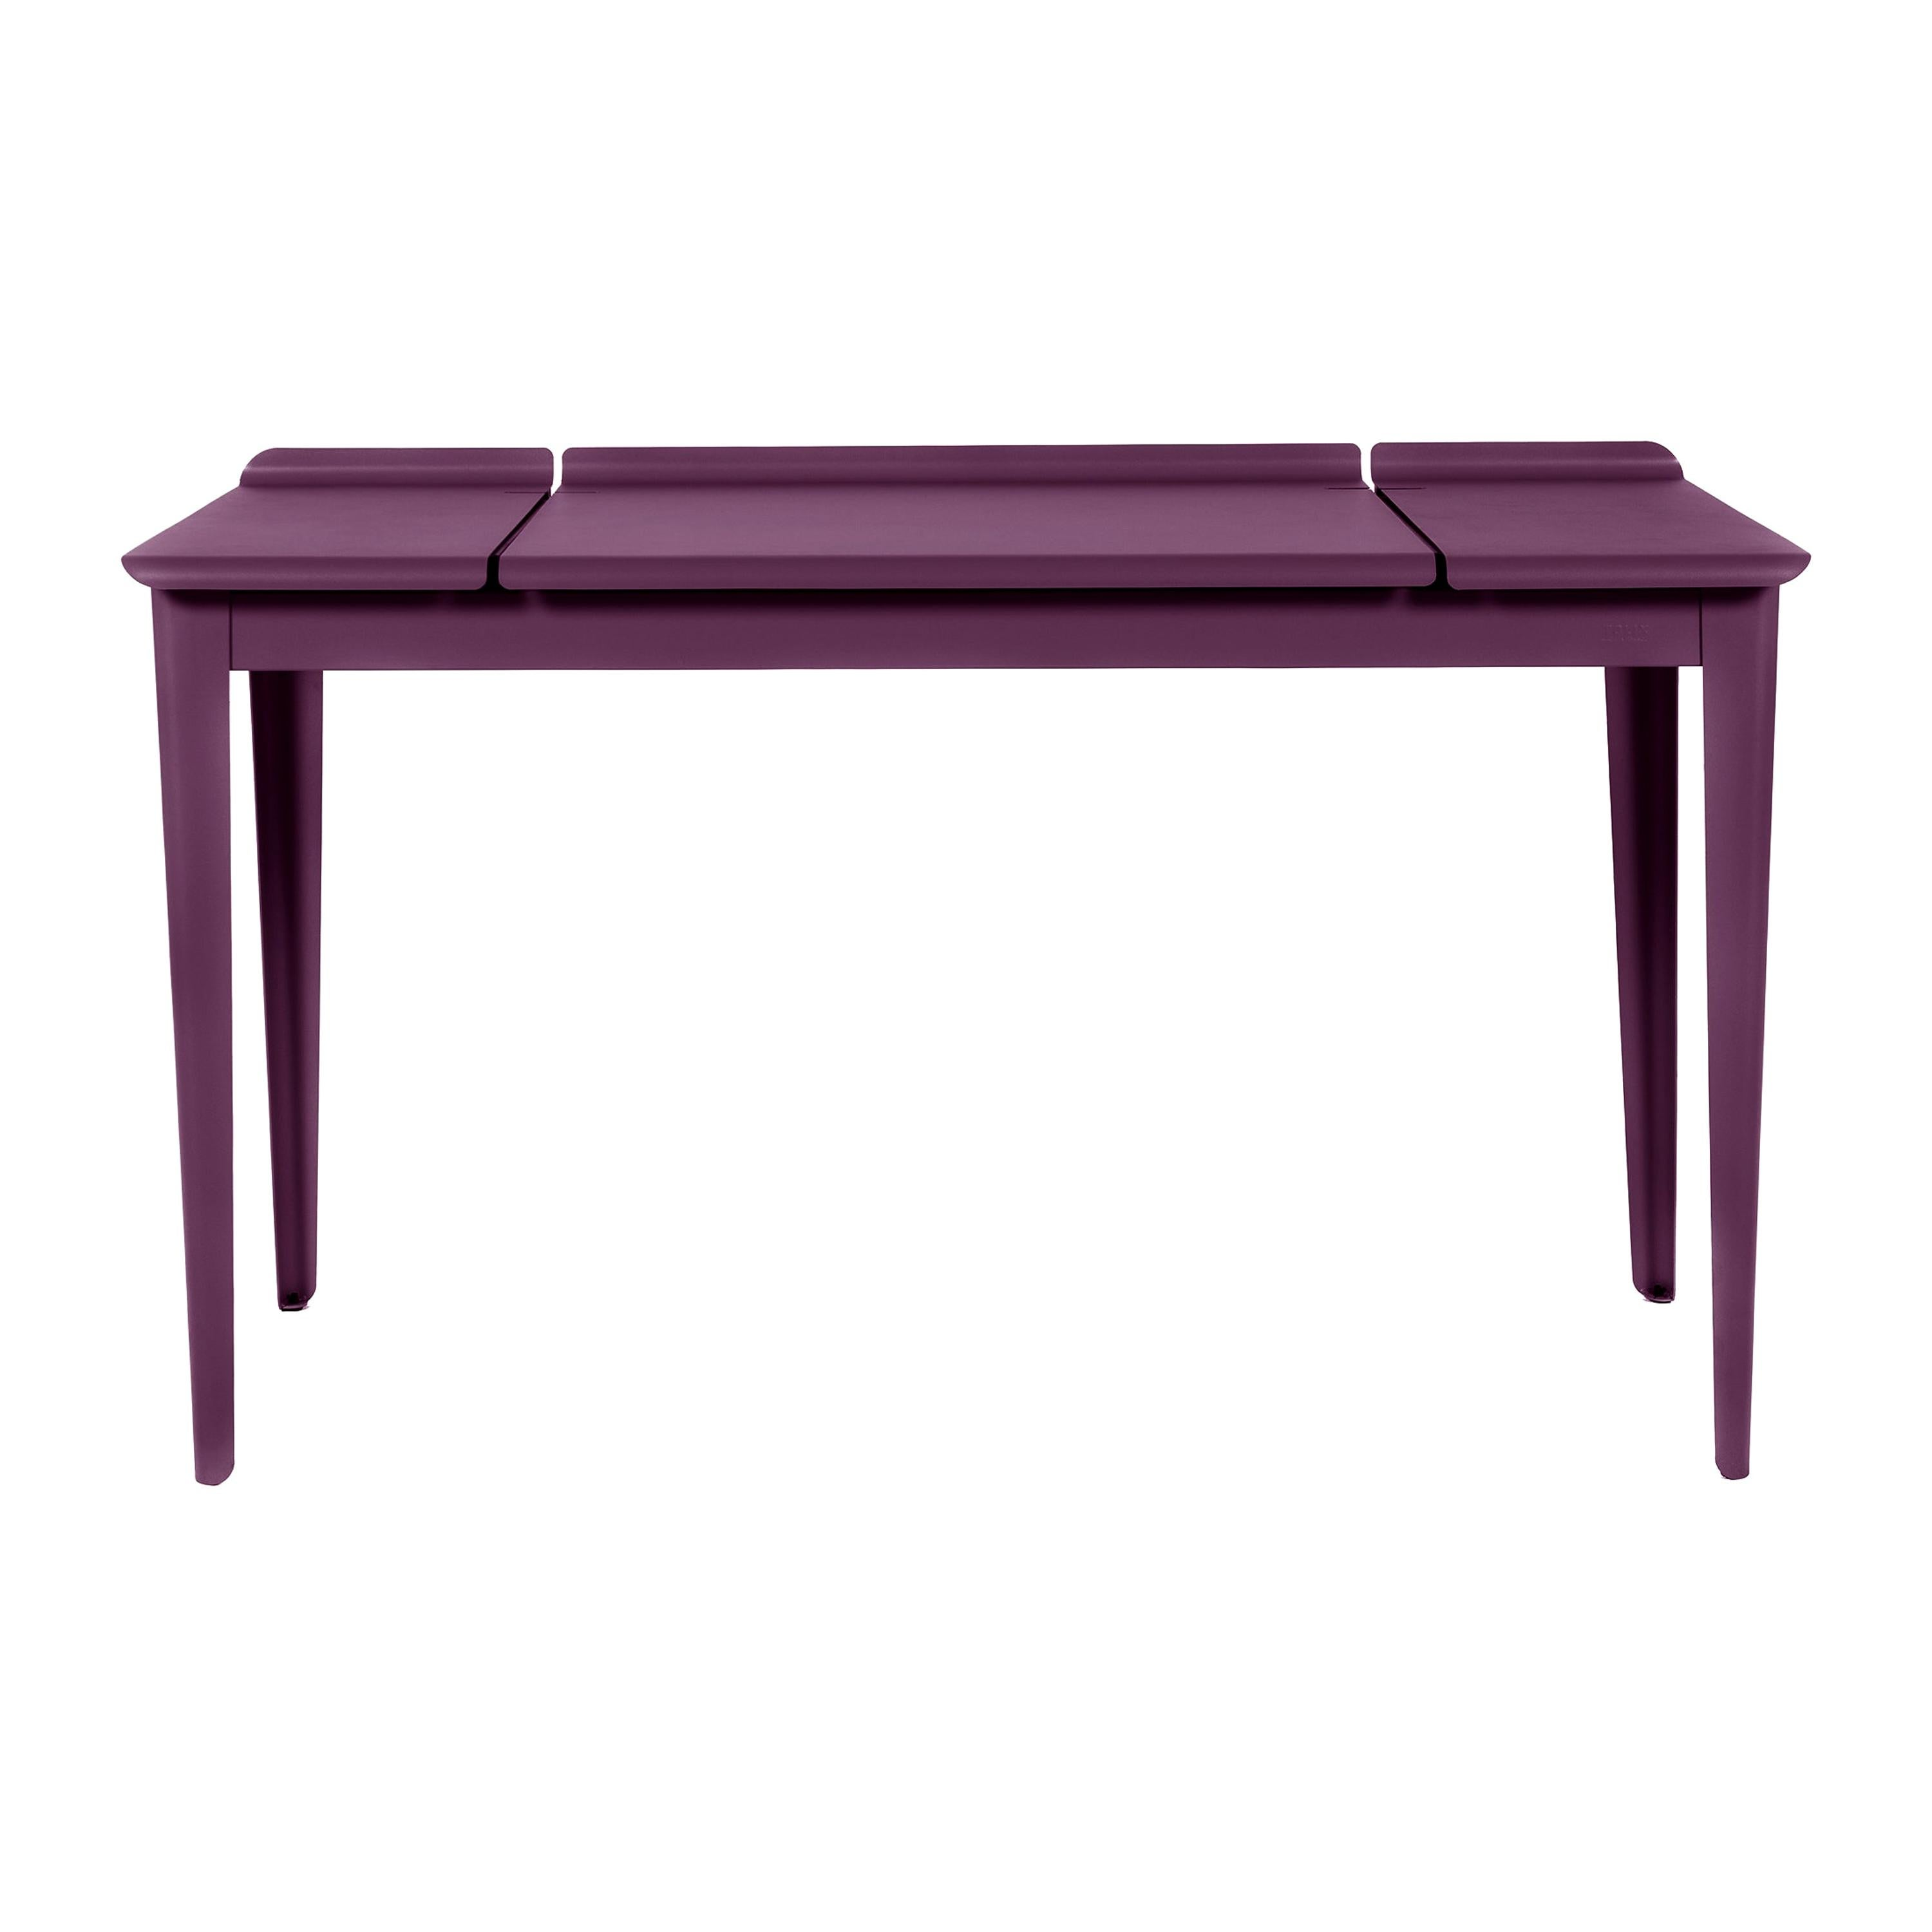 Large Flap Desk 60x130 in Pop Colors by Sebastian Berge and Tolix